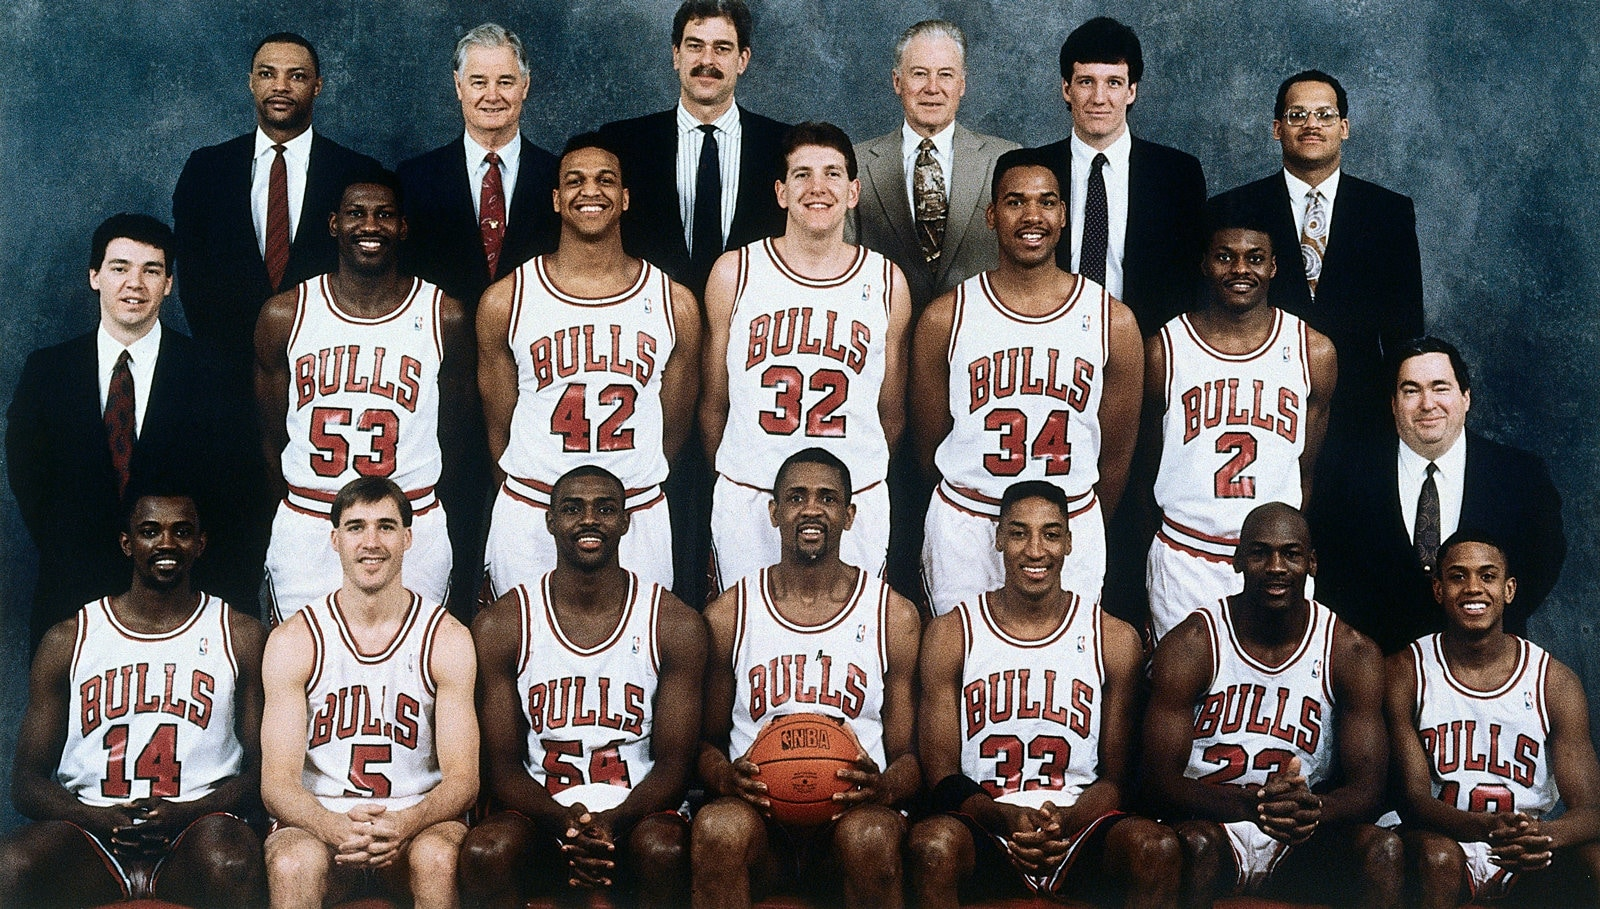 The 1990-91 NBA Chicago Bulls pose for a team portrait in Chicago, IL.